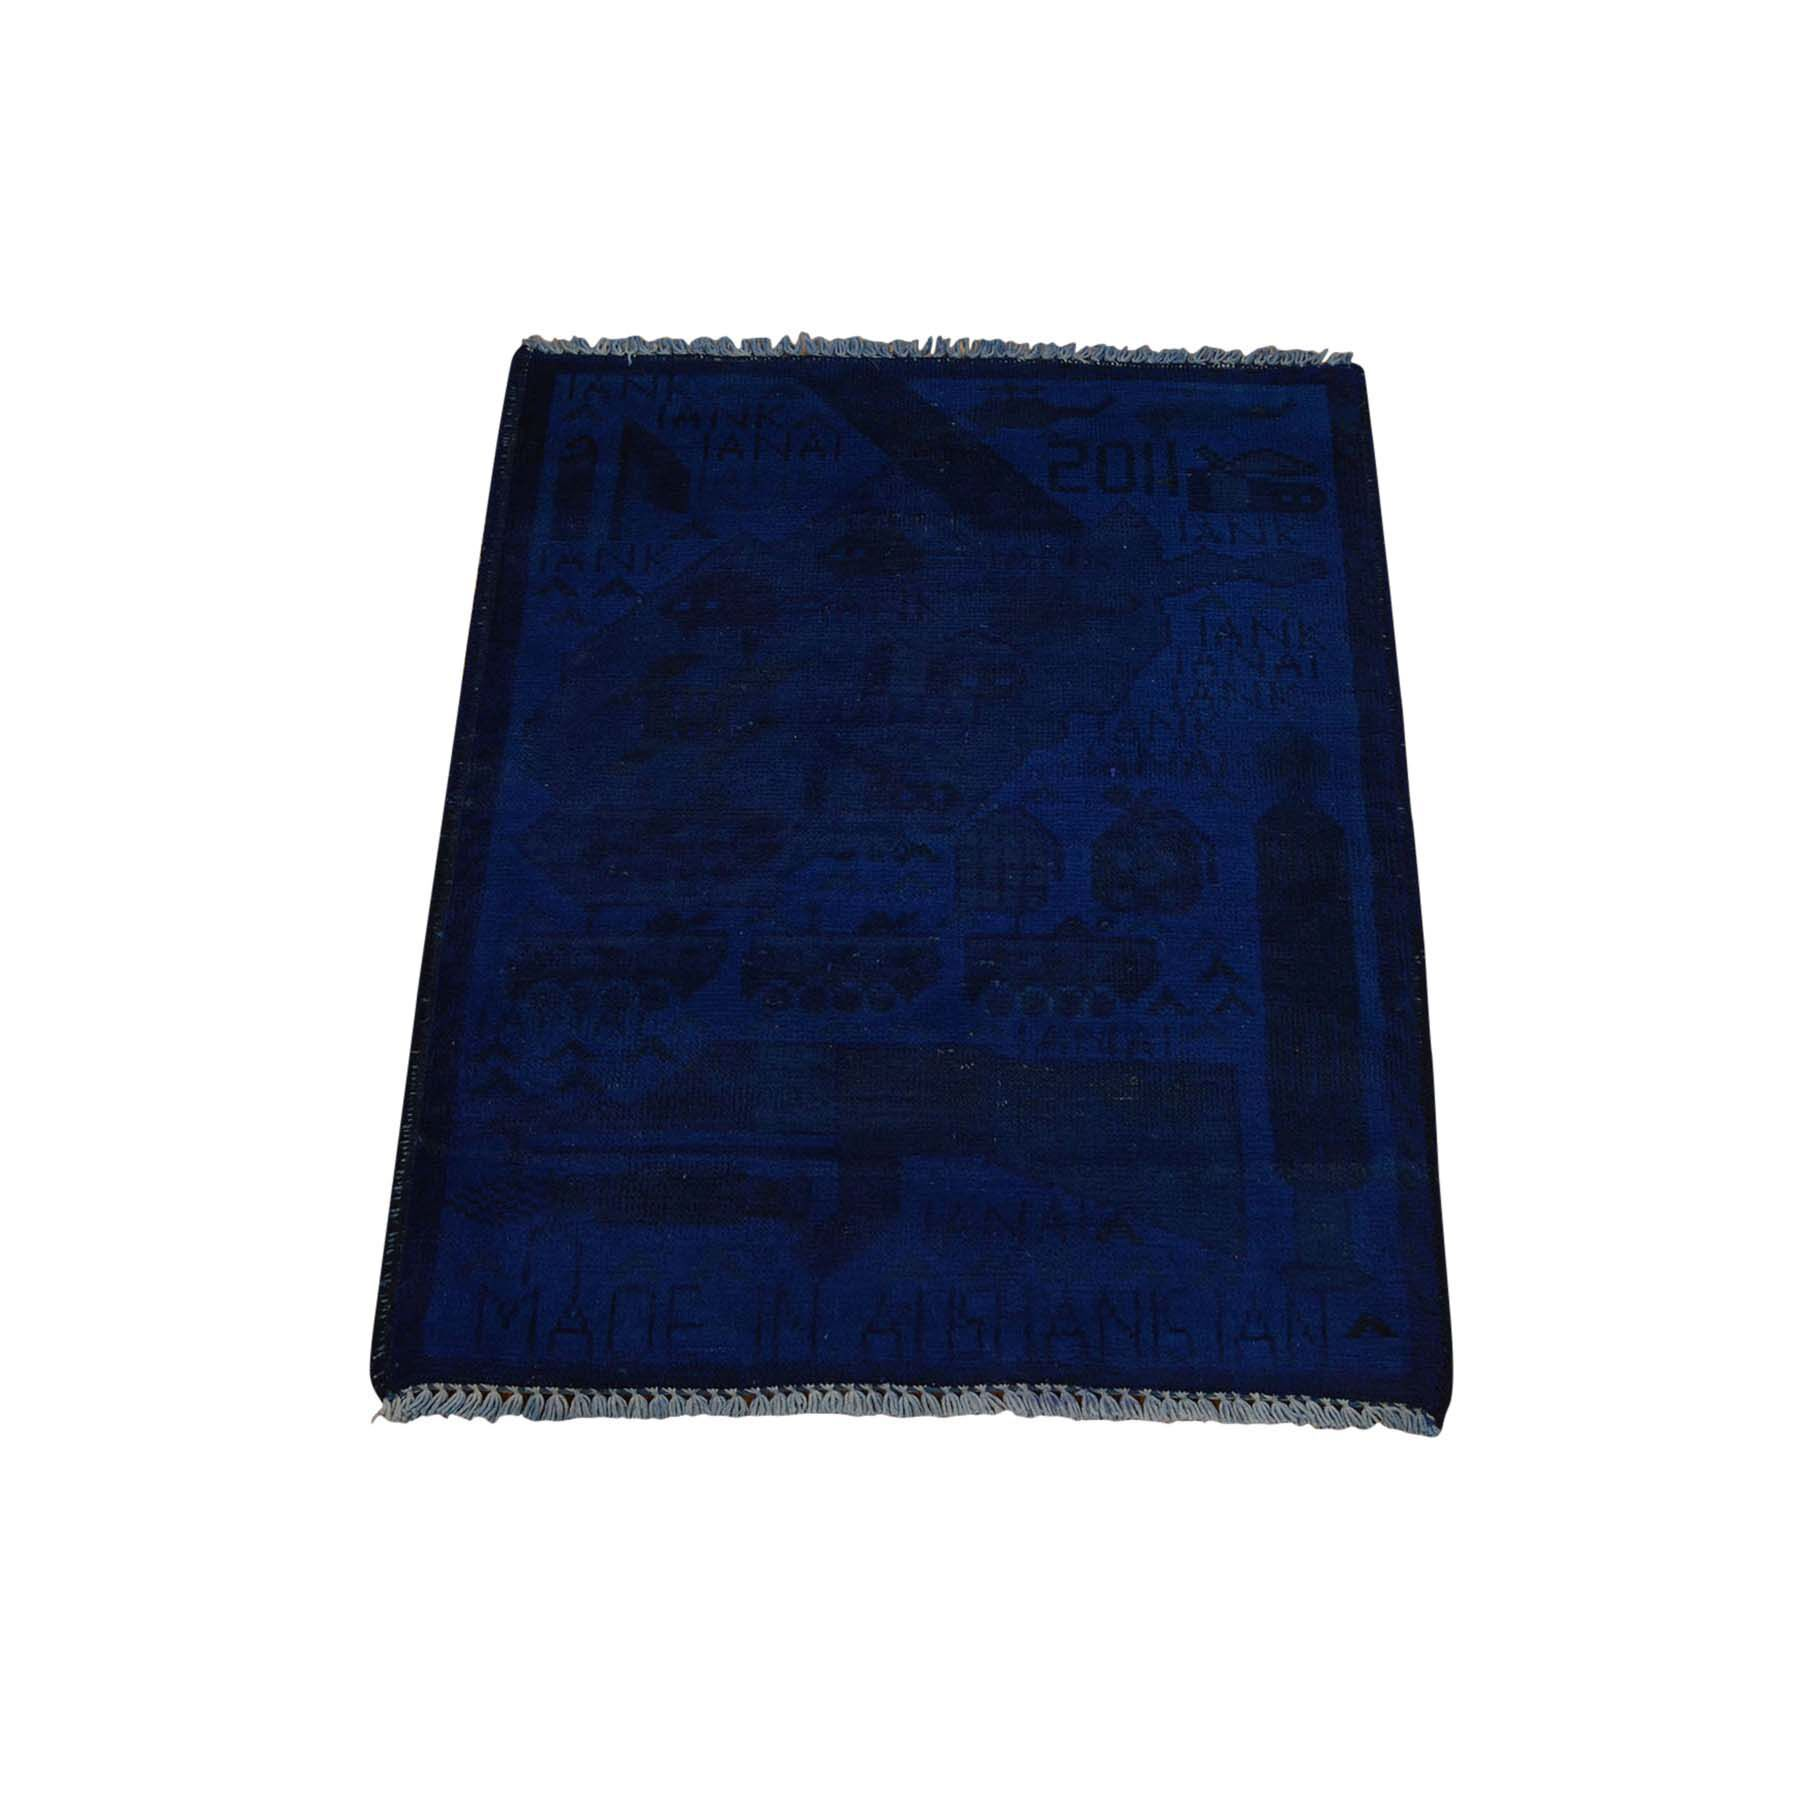 One-of-a-Kind Guns and Tanks Afghan War overdyed Hand-Knotted Blue Area Rug